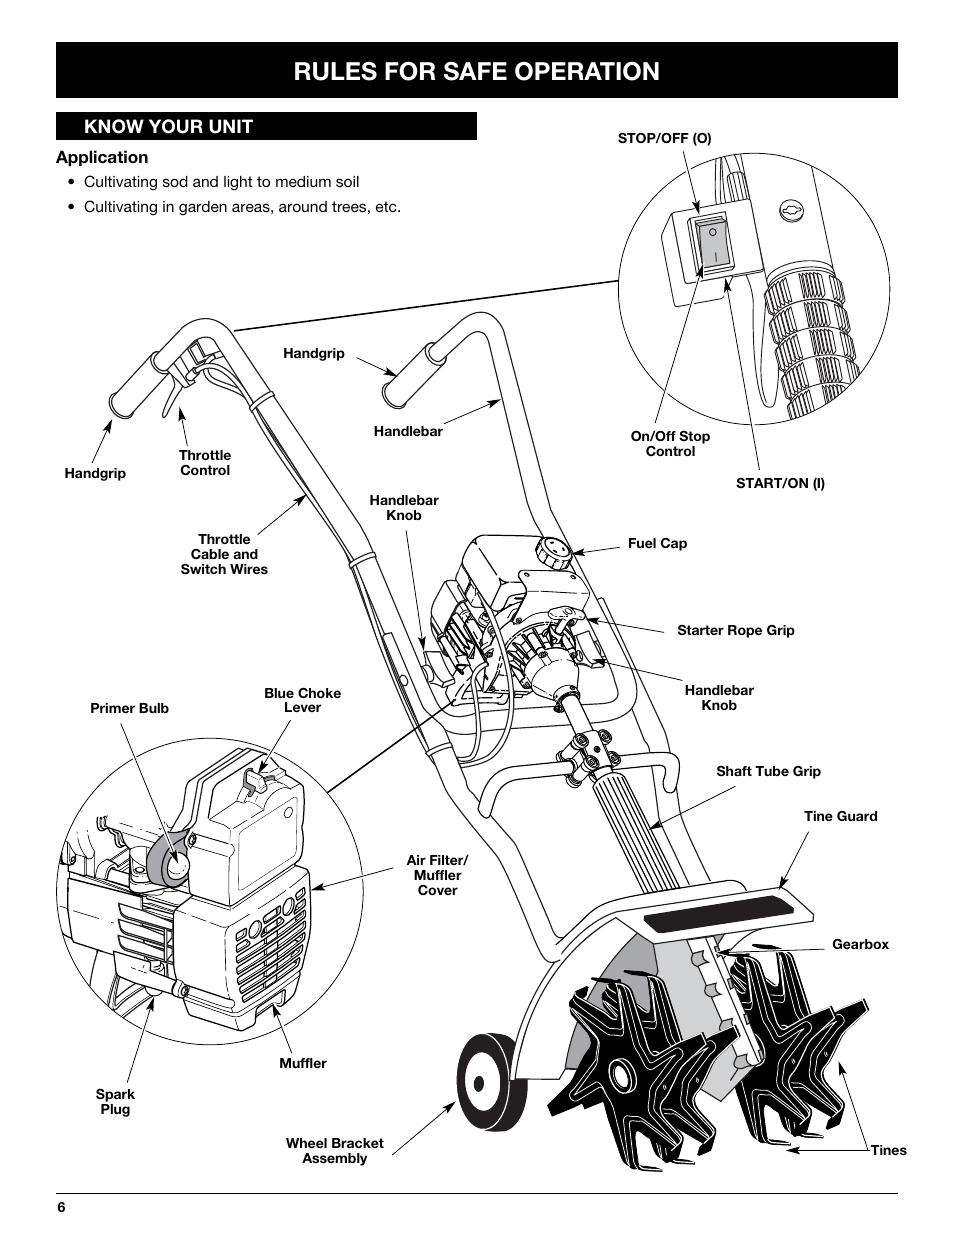 Koomey Unit Operational Manual